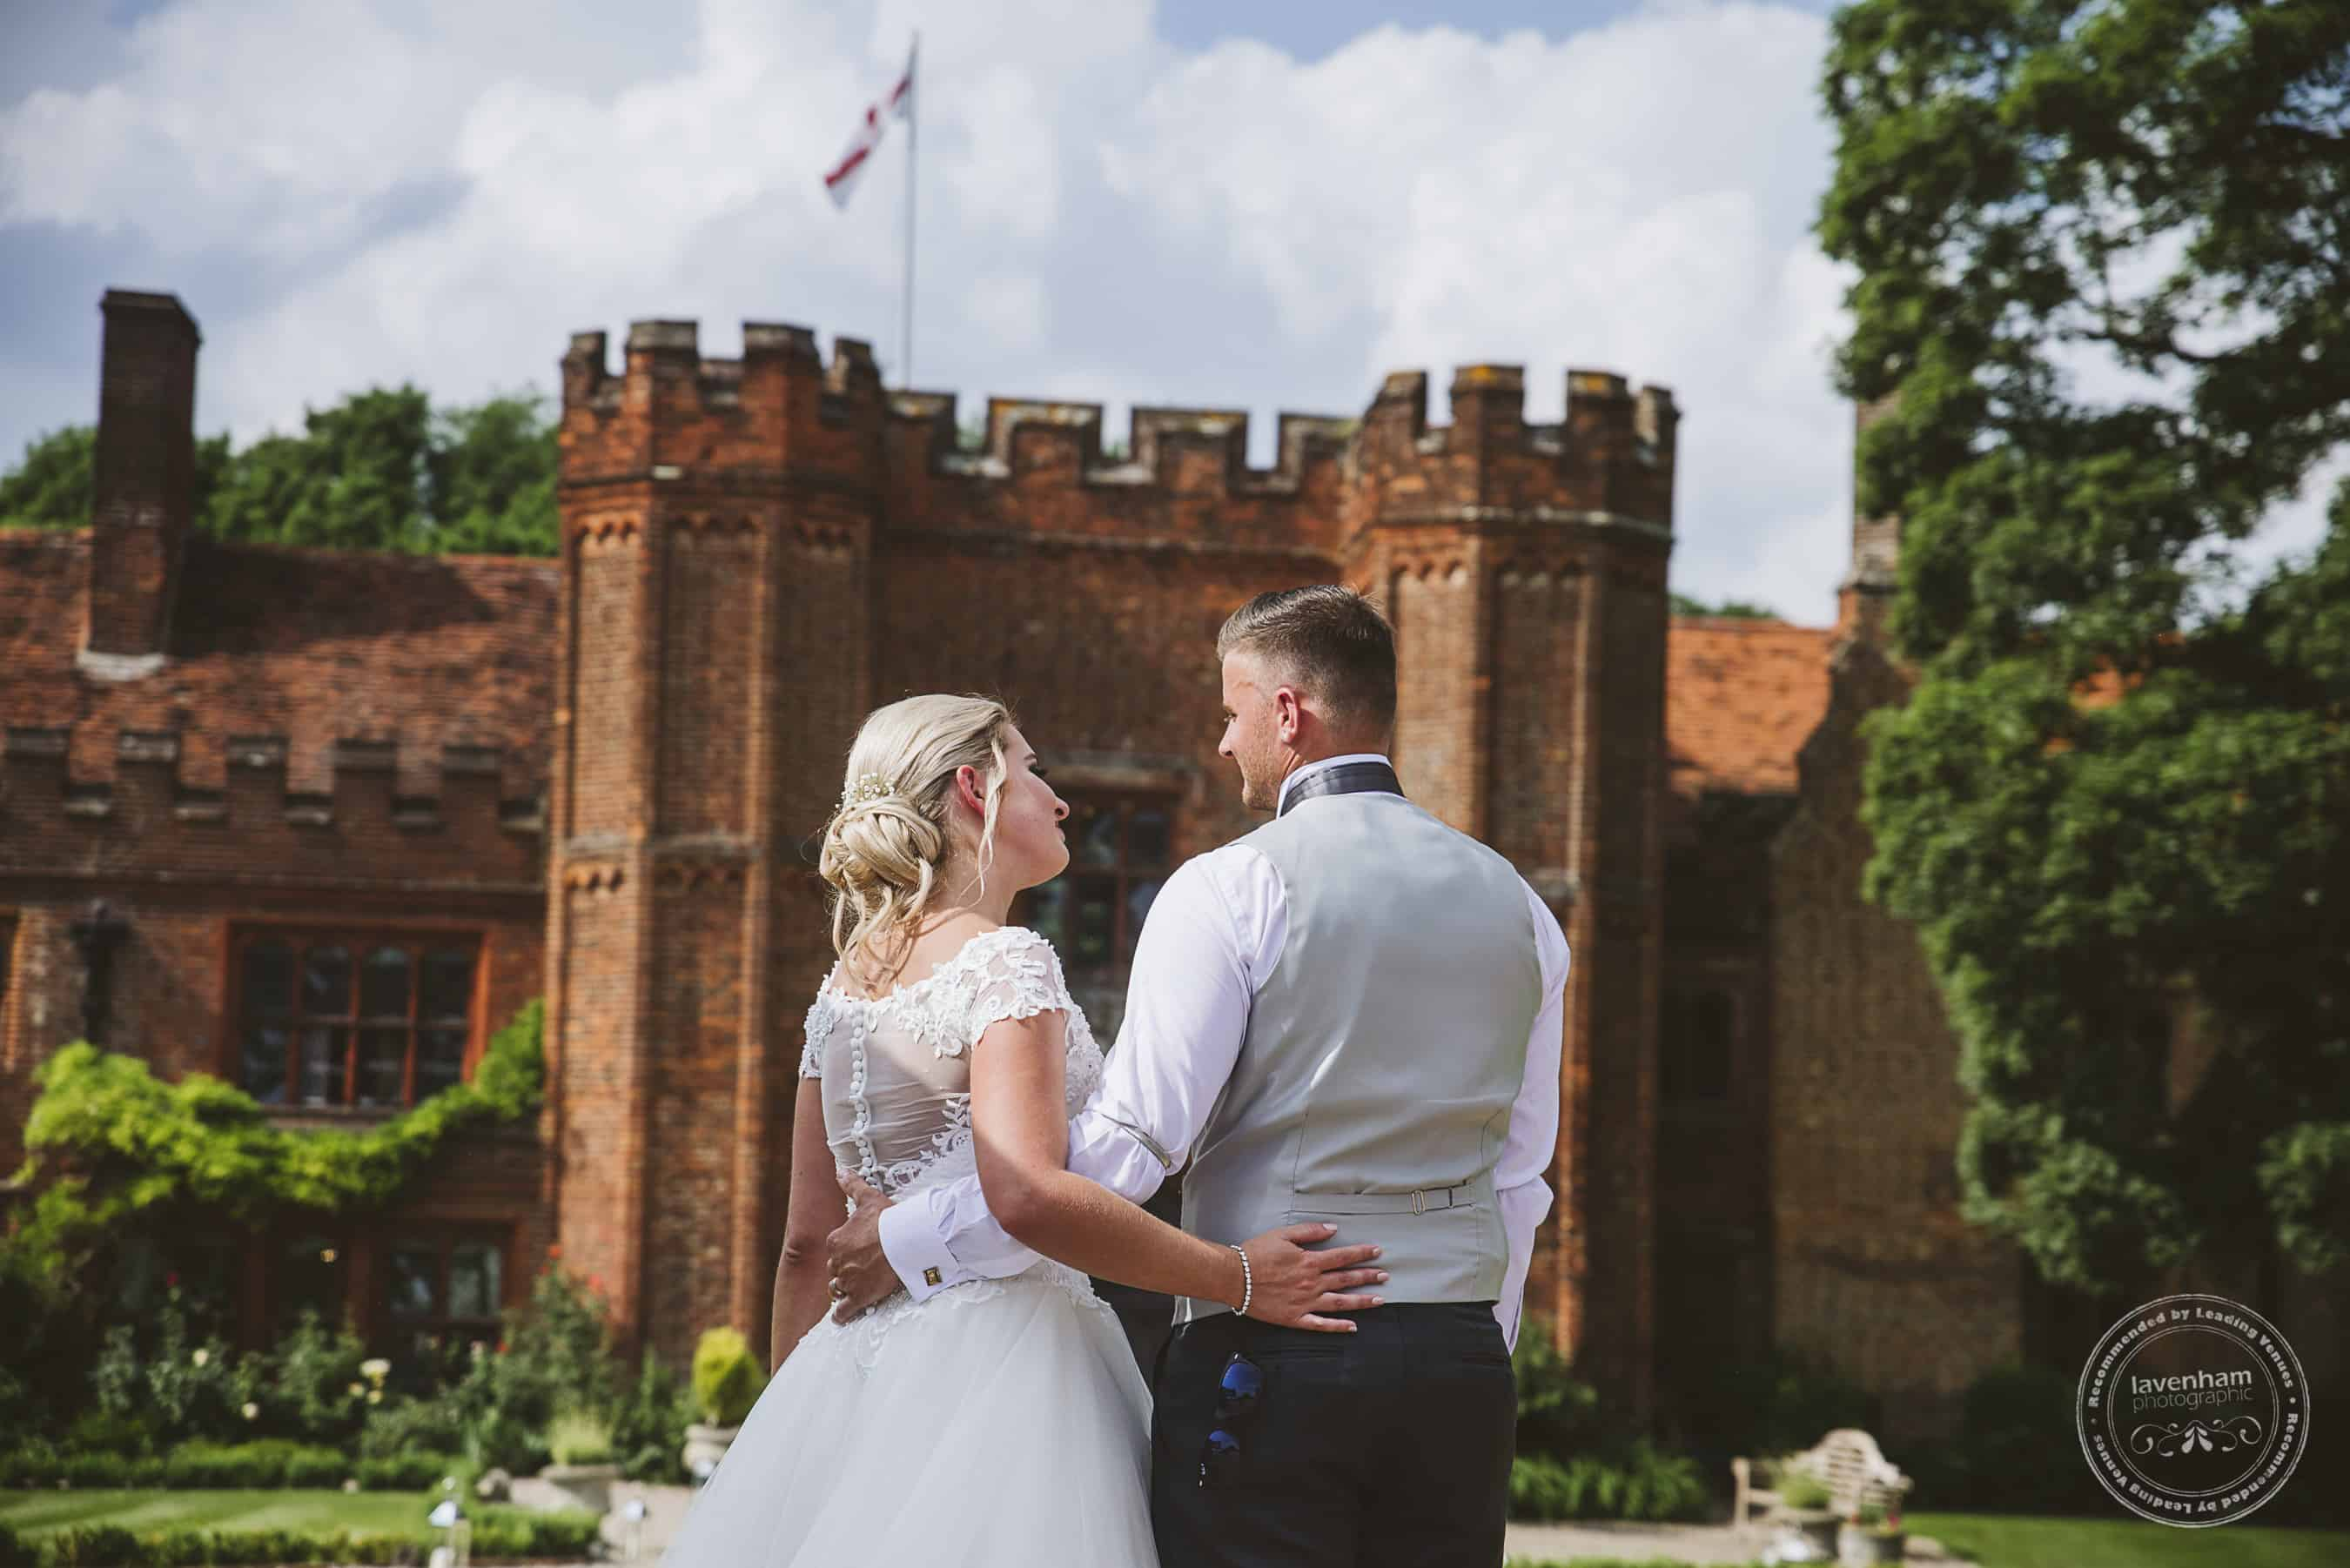 030618 Leez Priory Wedding Photography Lavenham Photographic 089